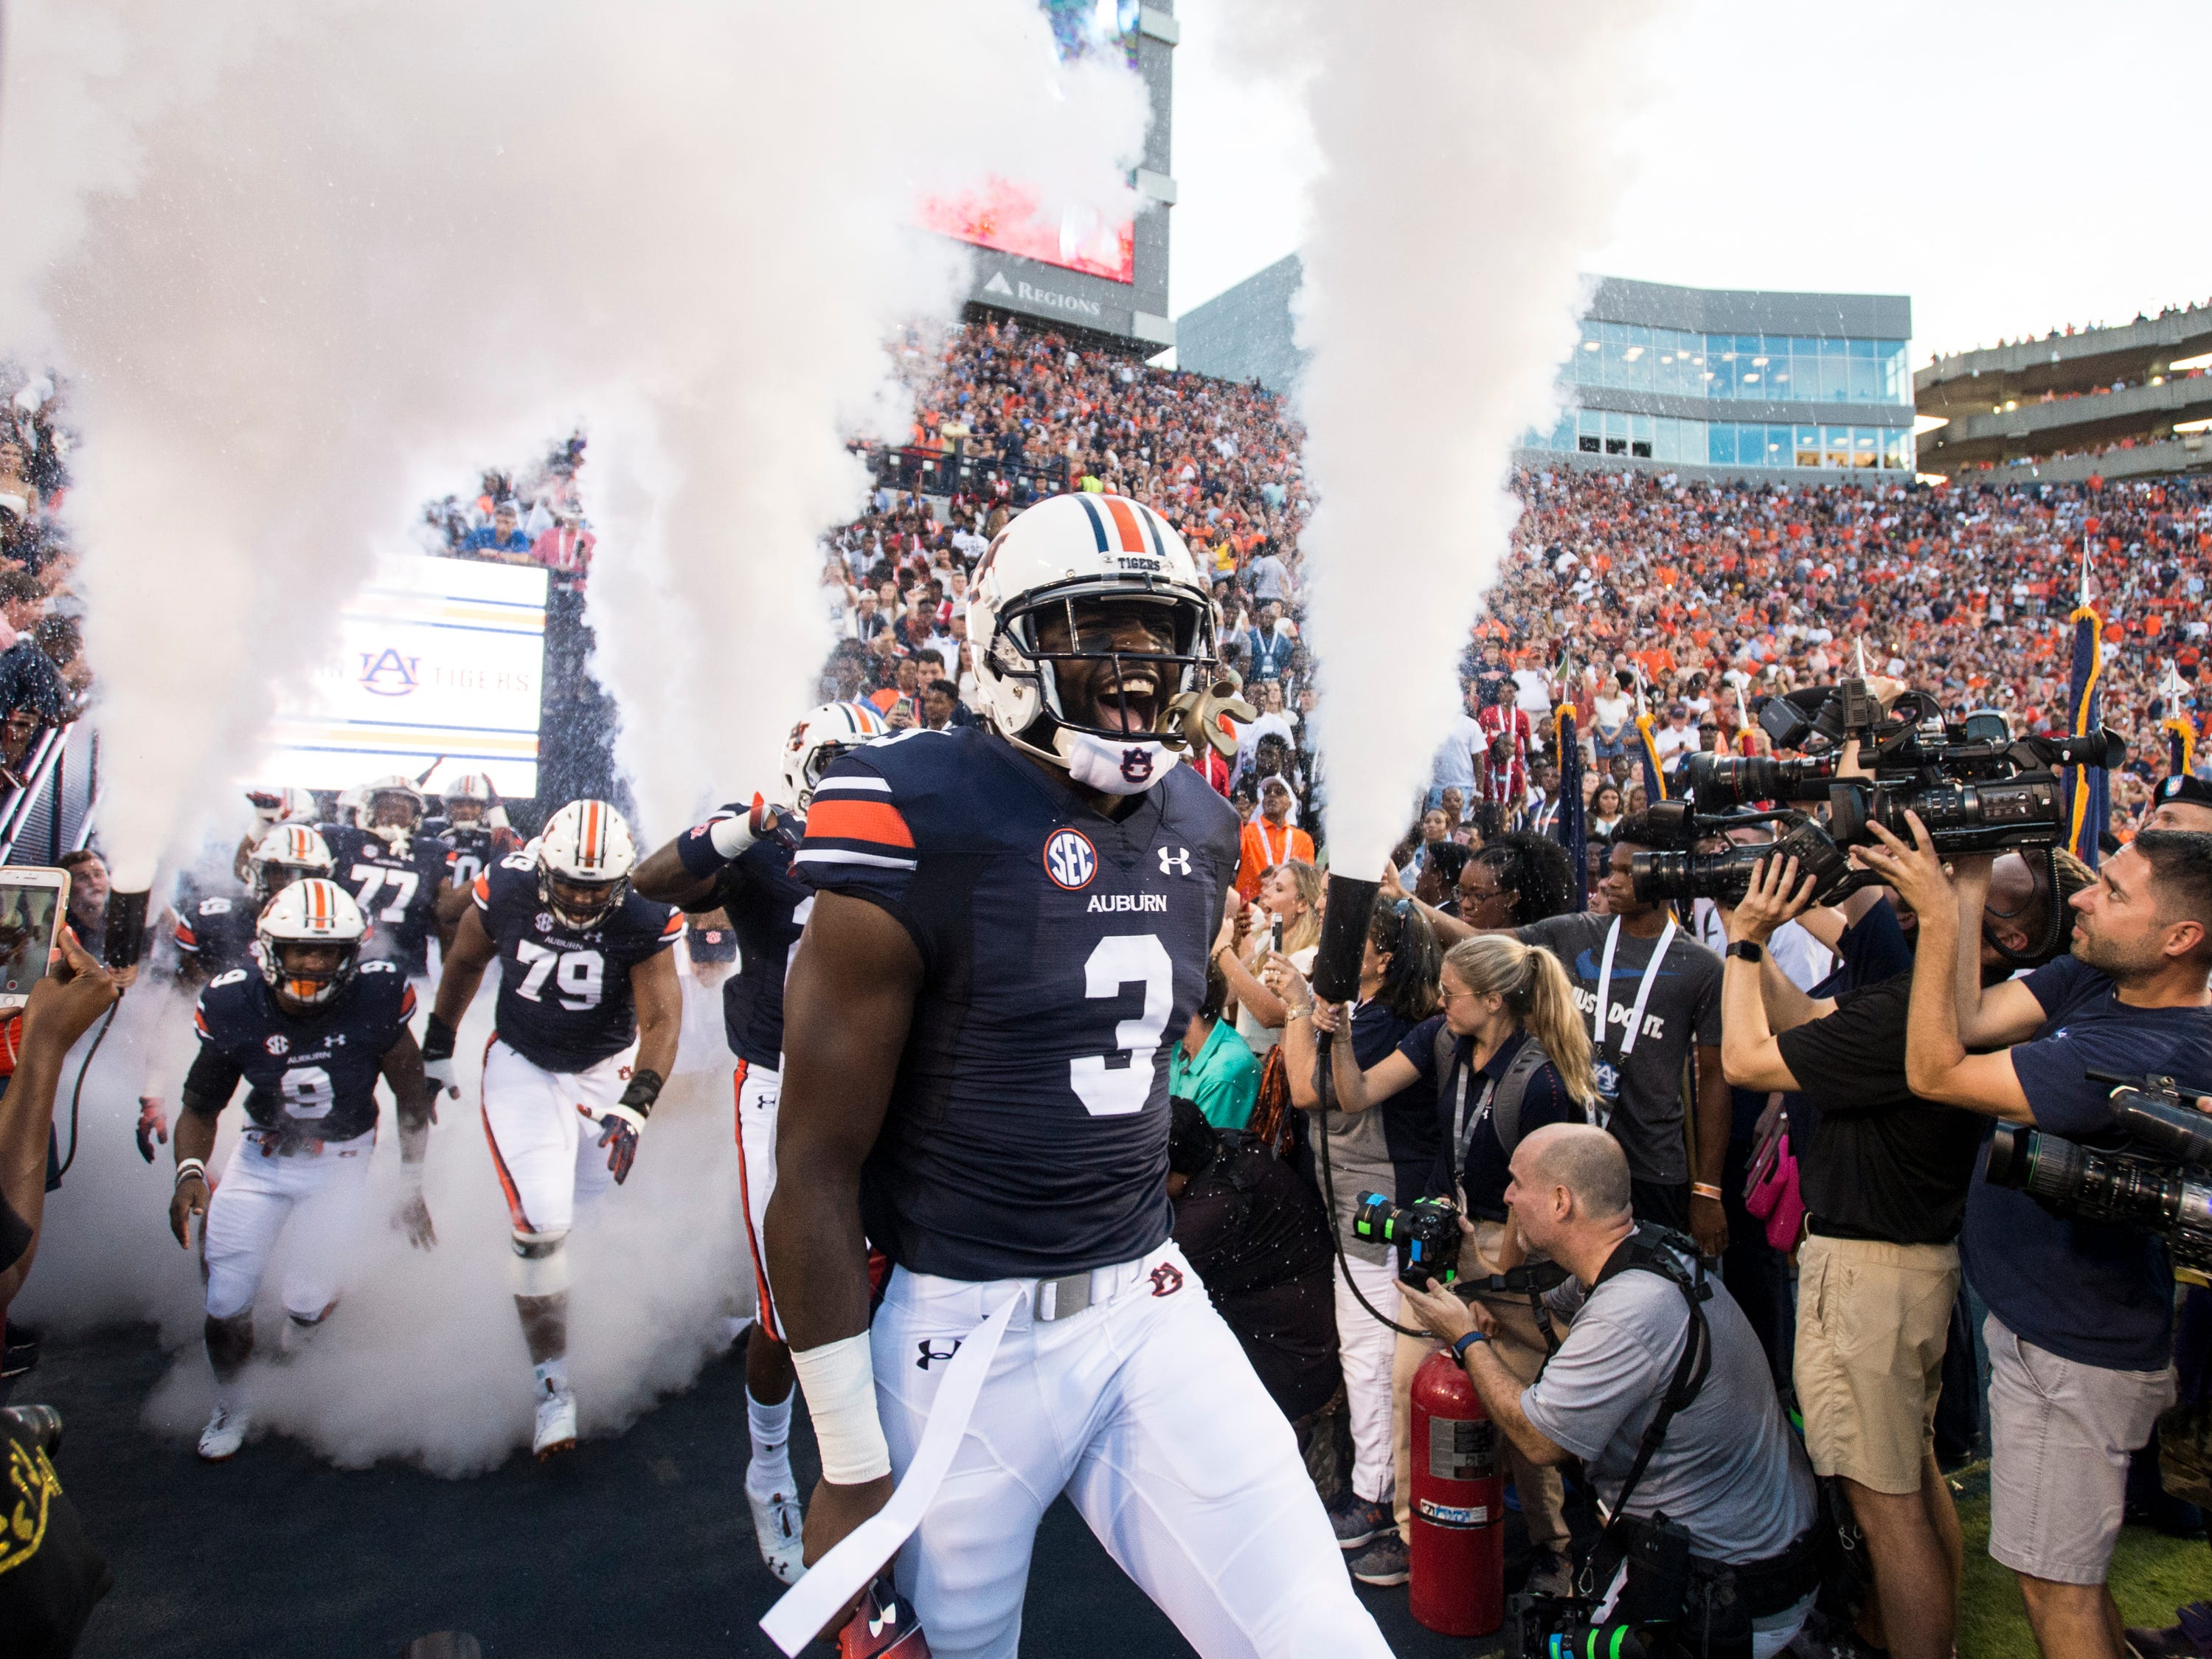 Auburn's Nate Craig-Myers (3) screams as his team is introduced at Jordan-Hare Stadium in Auburn, Ala., on Saturday, Sept. 8, 2018. Auburn leads Alabama State 42-2 at halftime.